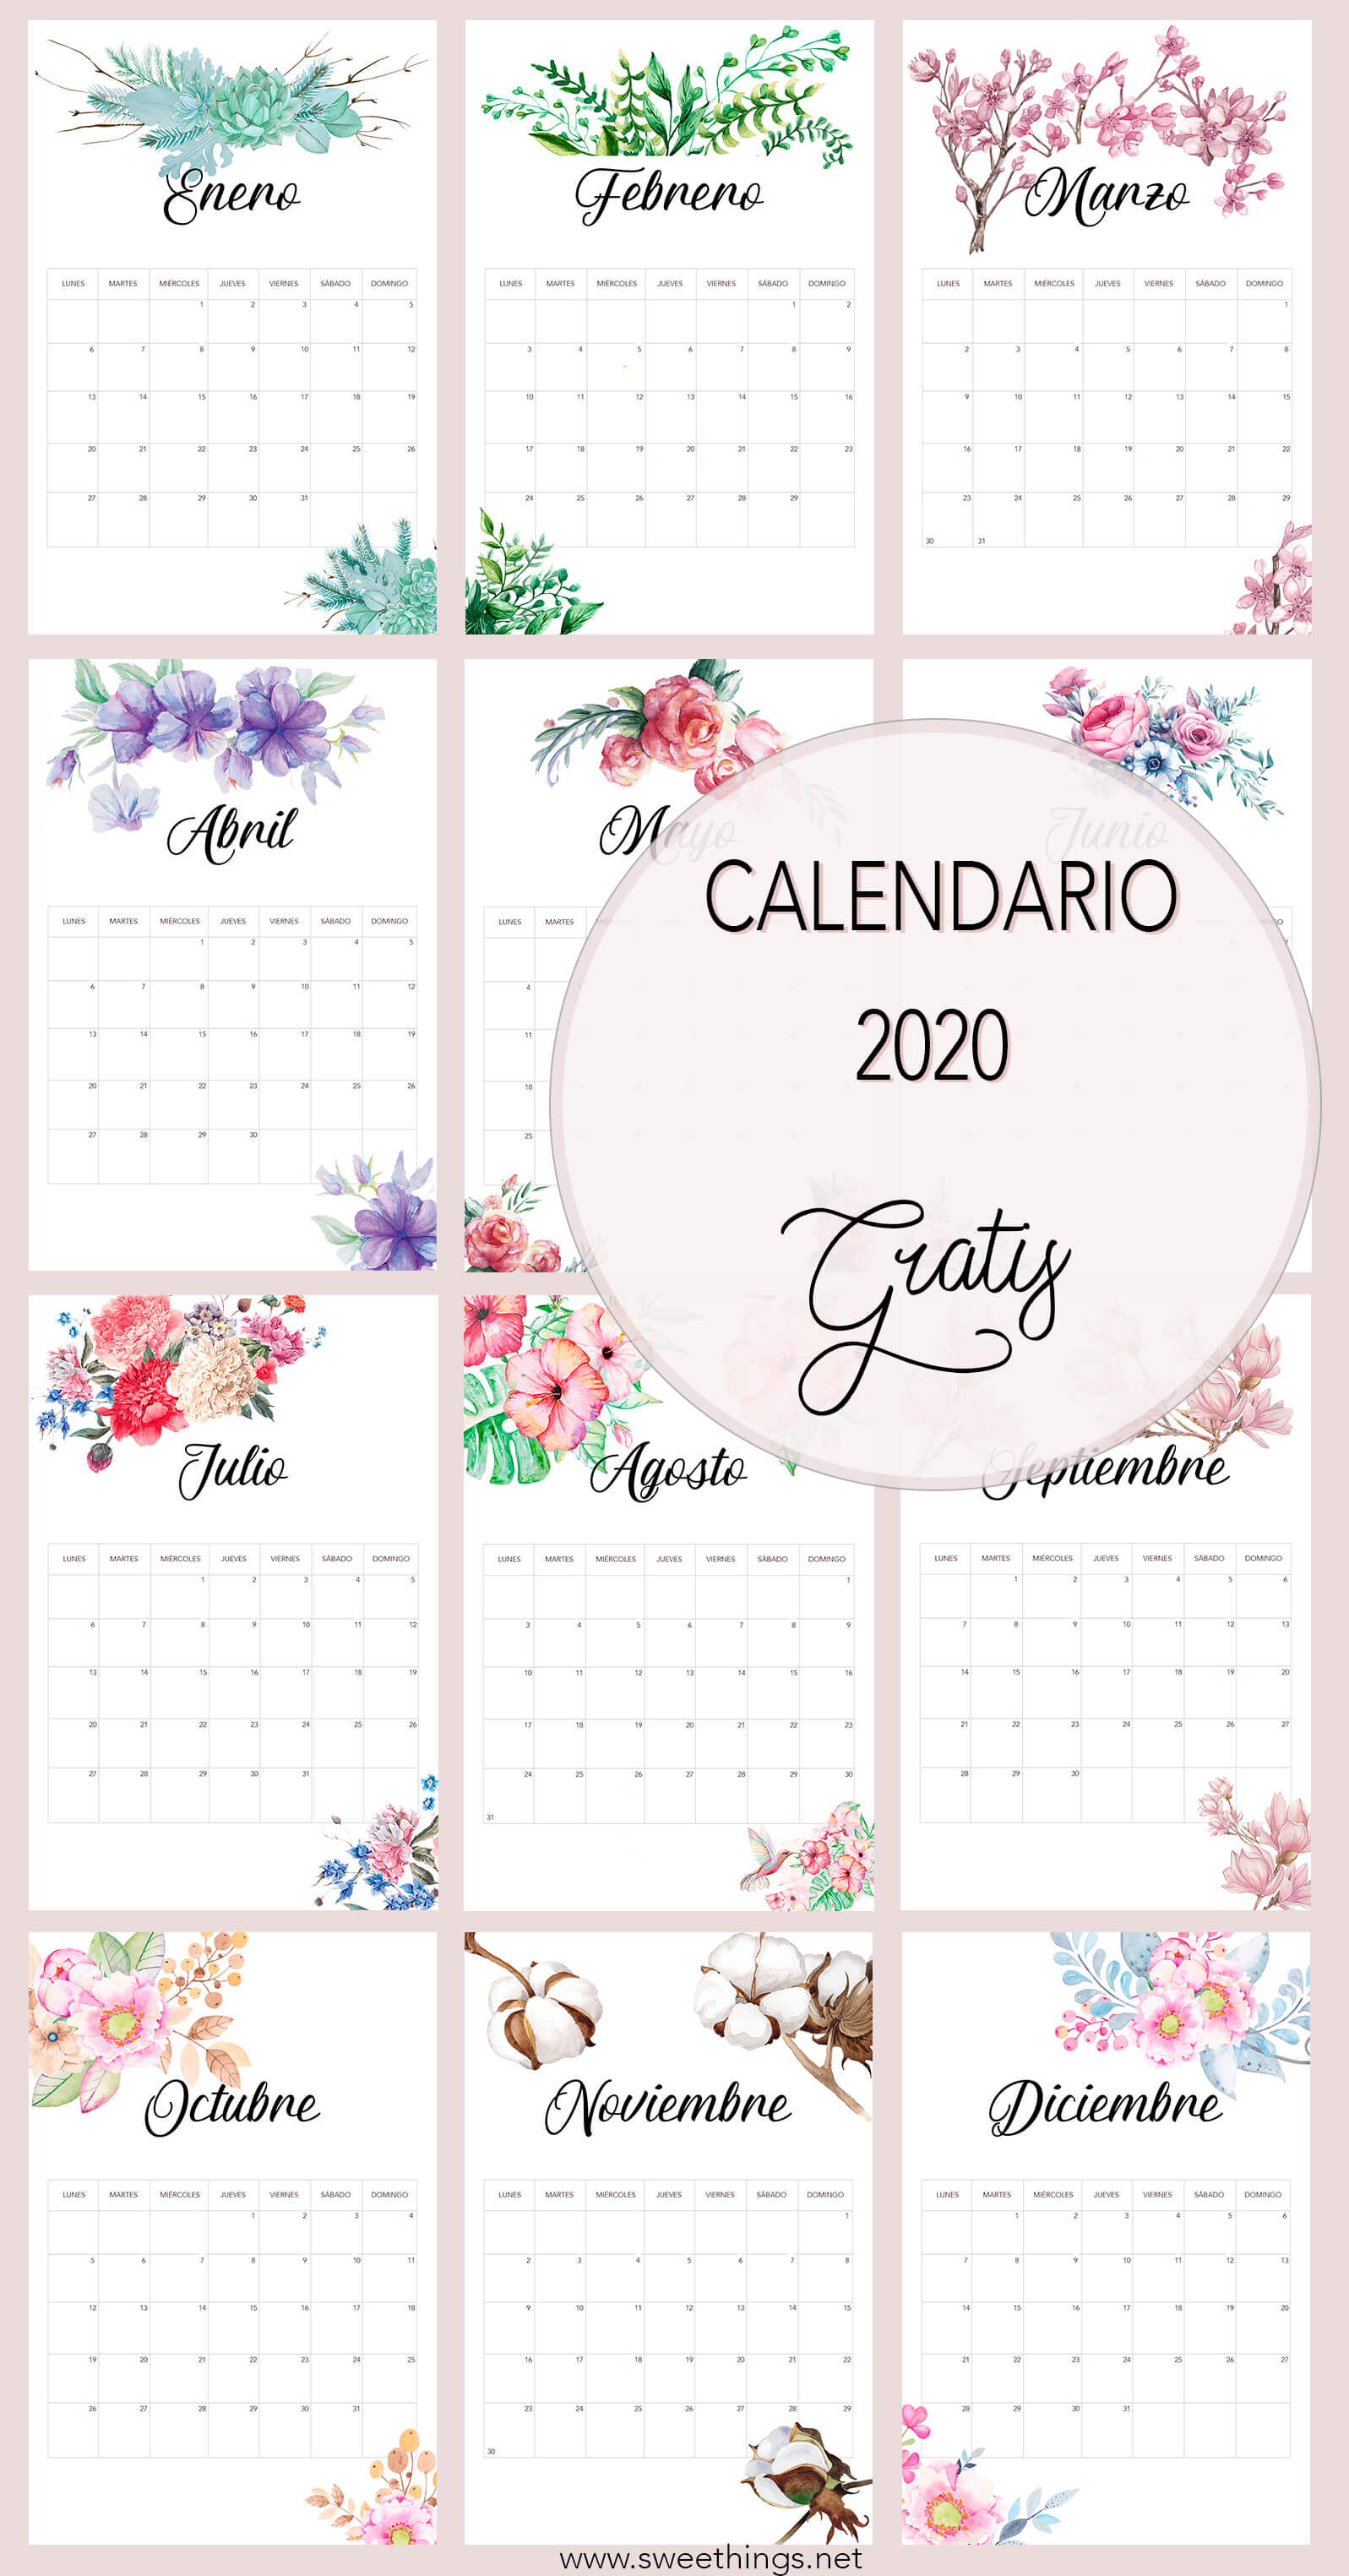 Calendario 2020 floral gratis para descargar · Via www.sweethings.net